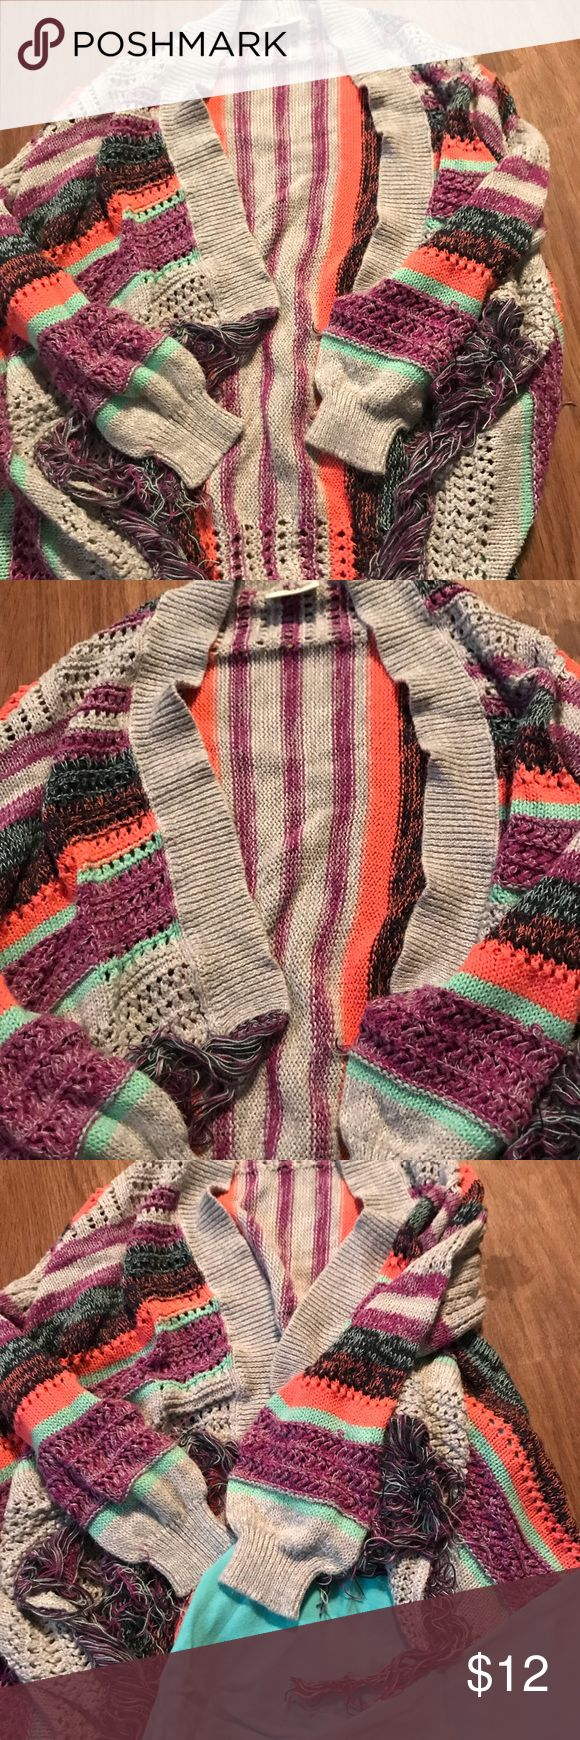 Little Girls Cato sweater size 8 Little Girls Cato sweater size 8. In great condition no holes or stains. Non smoking Home. Shirts & Tops Sweaters